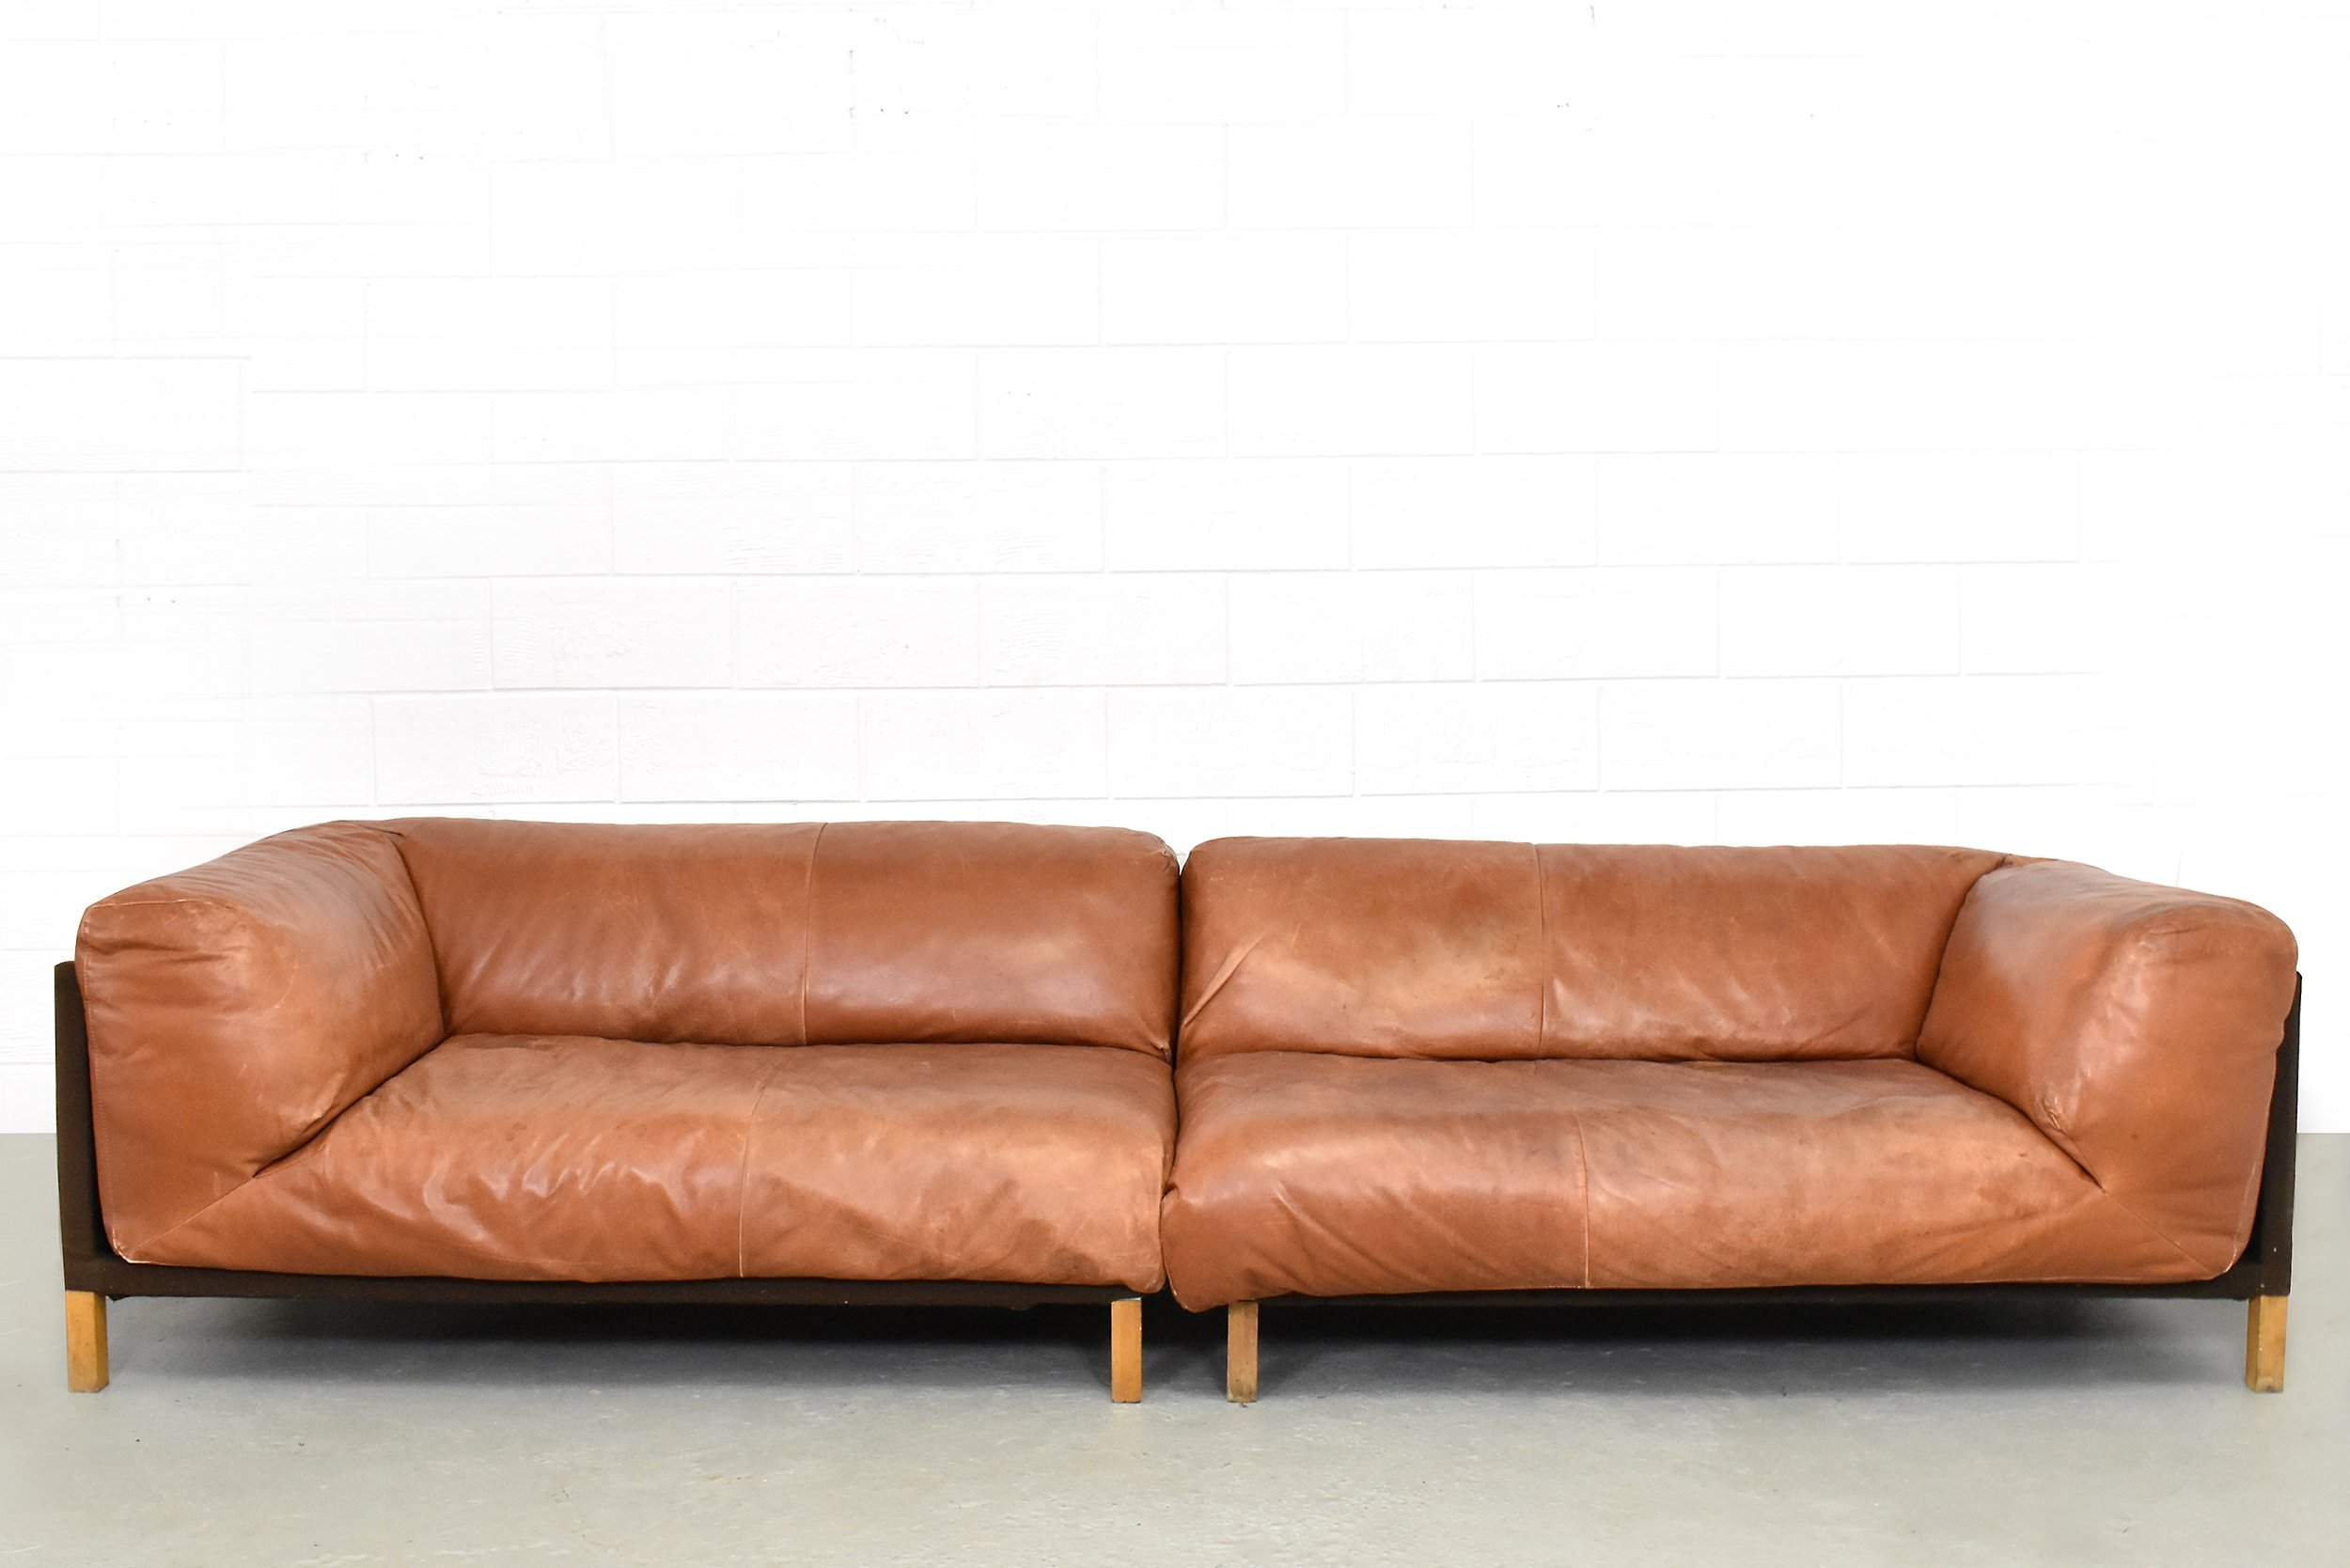 XXL Cognac Leather Sofa By Gerard Van Den Berg For Montis 1980s